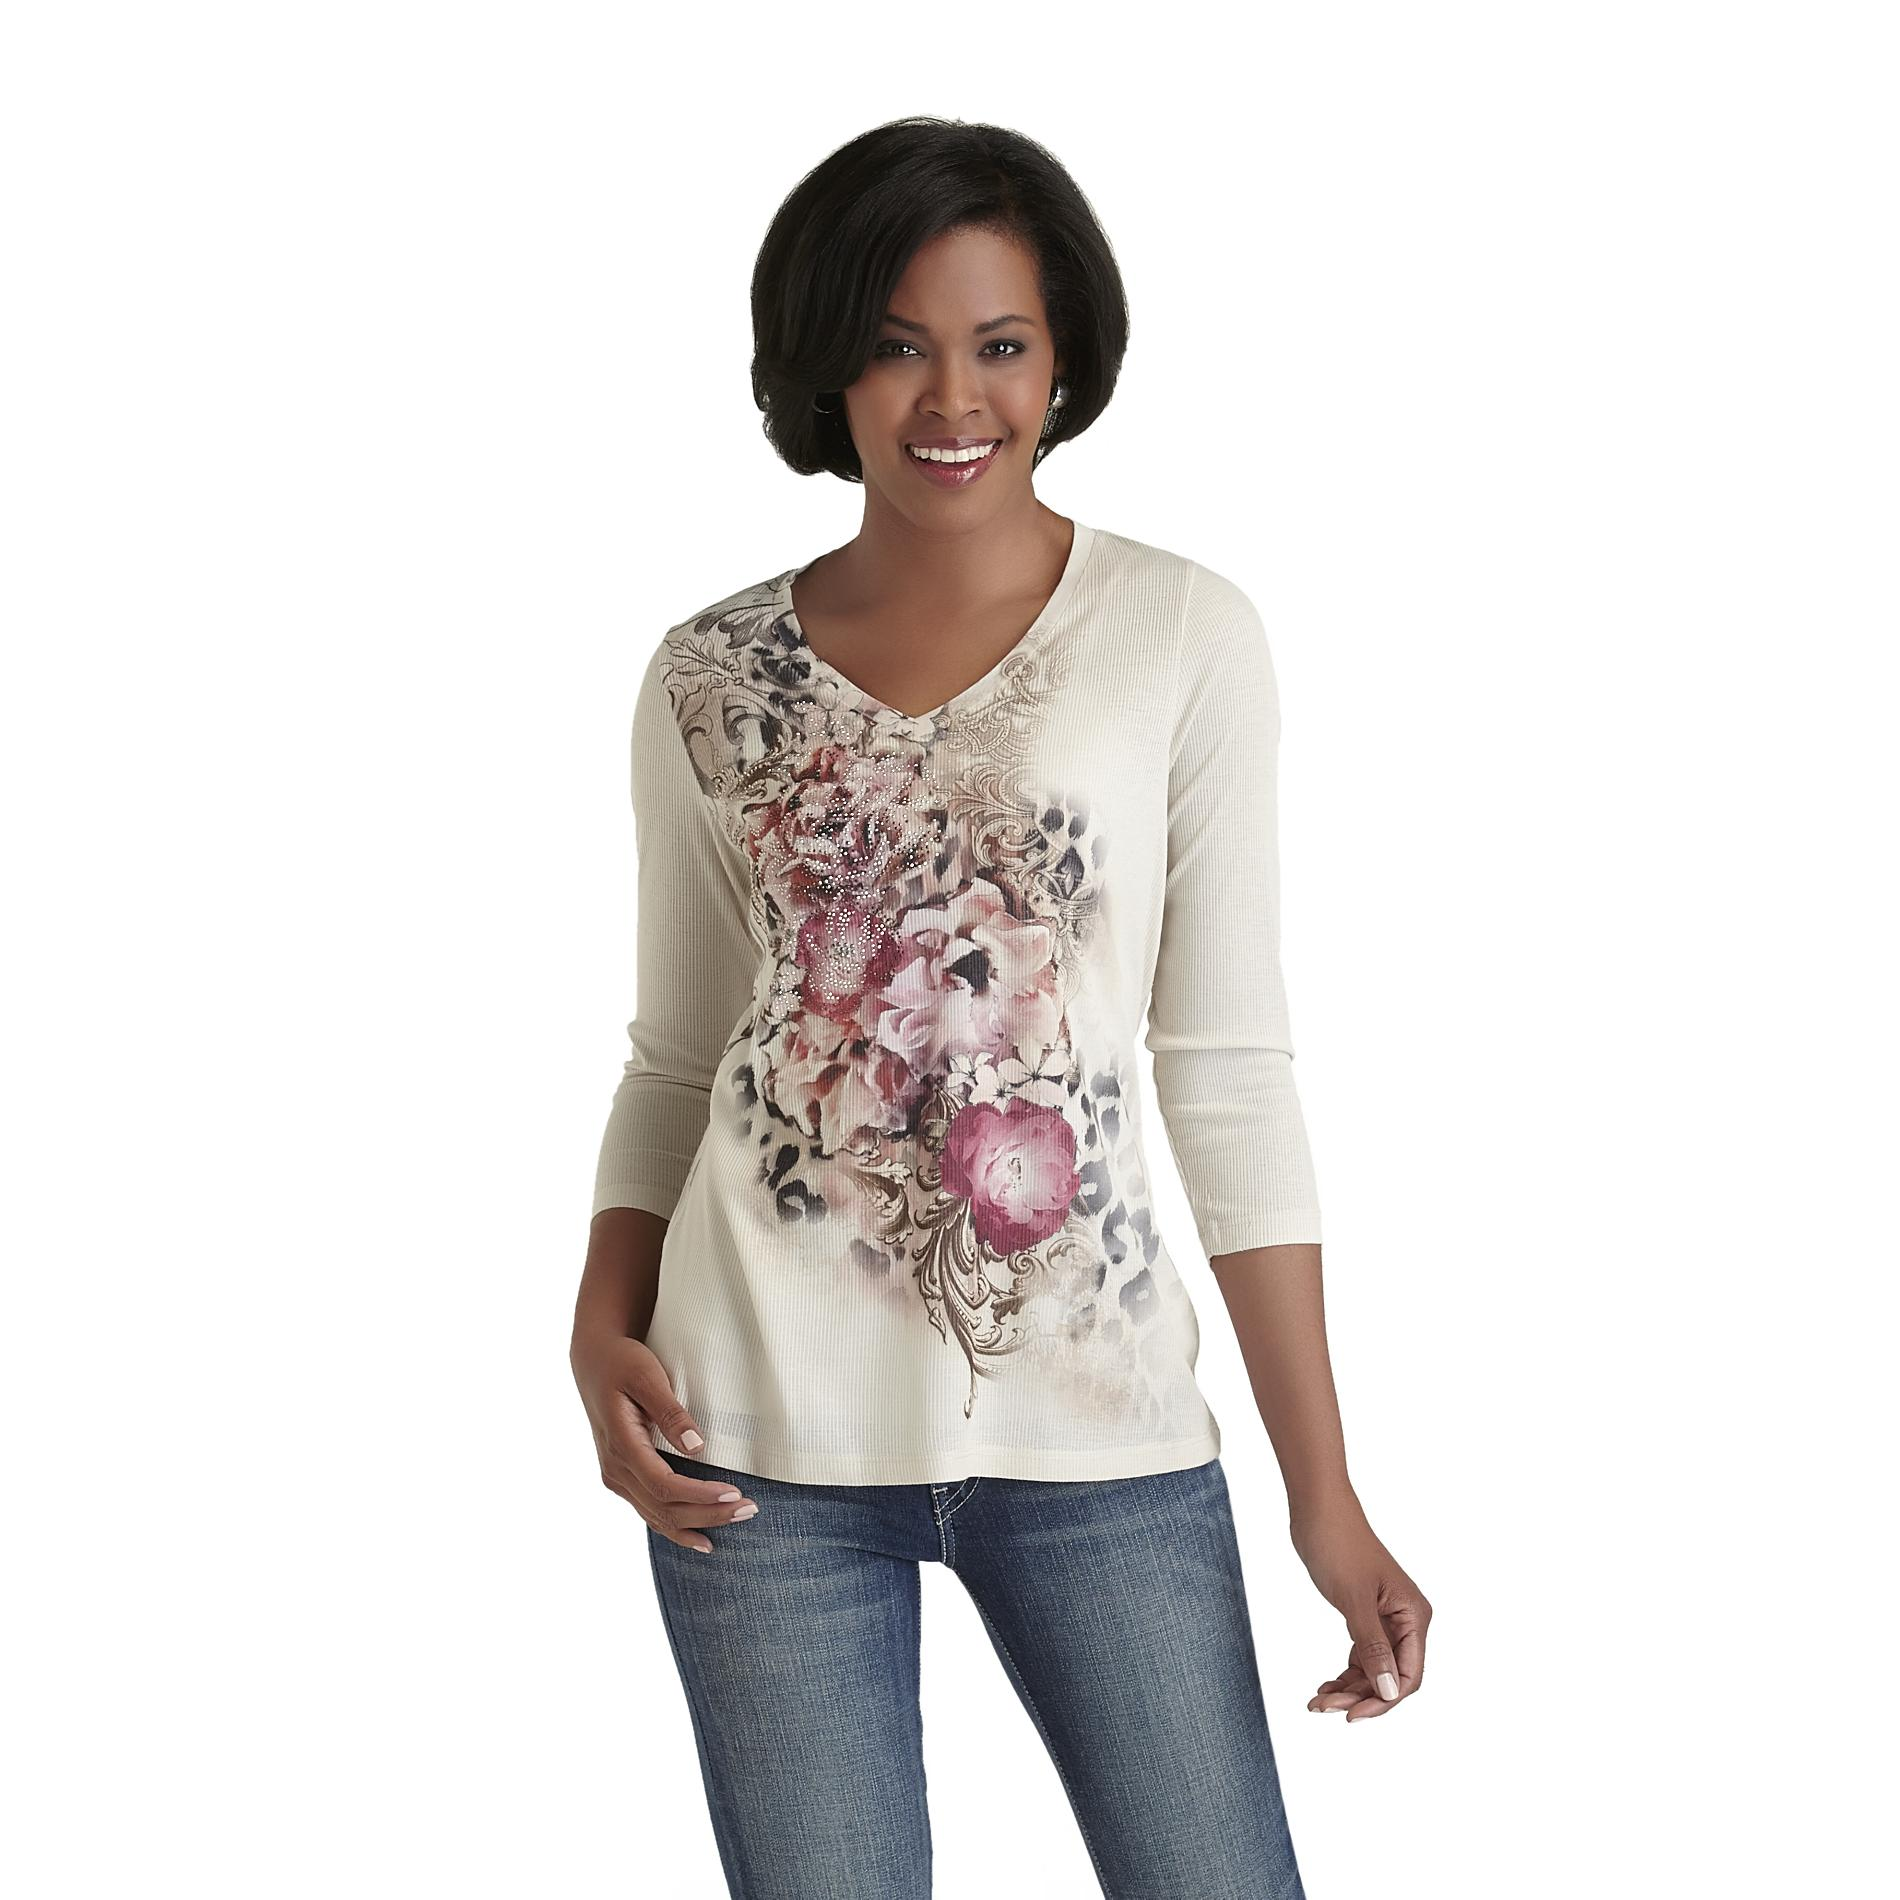 Laura Scott Women's V-Neck T-Shirt - Glitter Floral Print at Sears.com